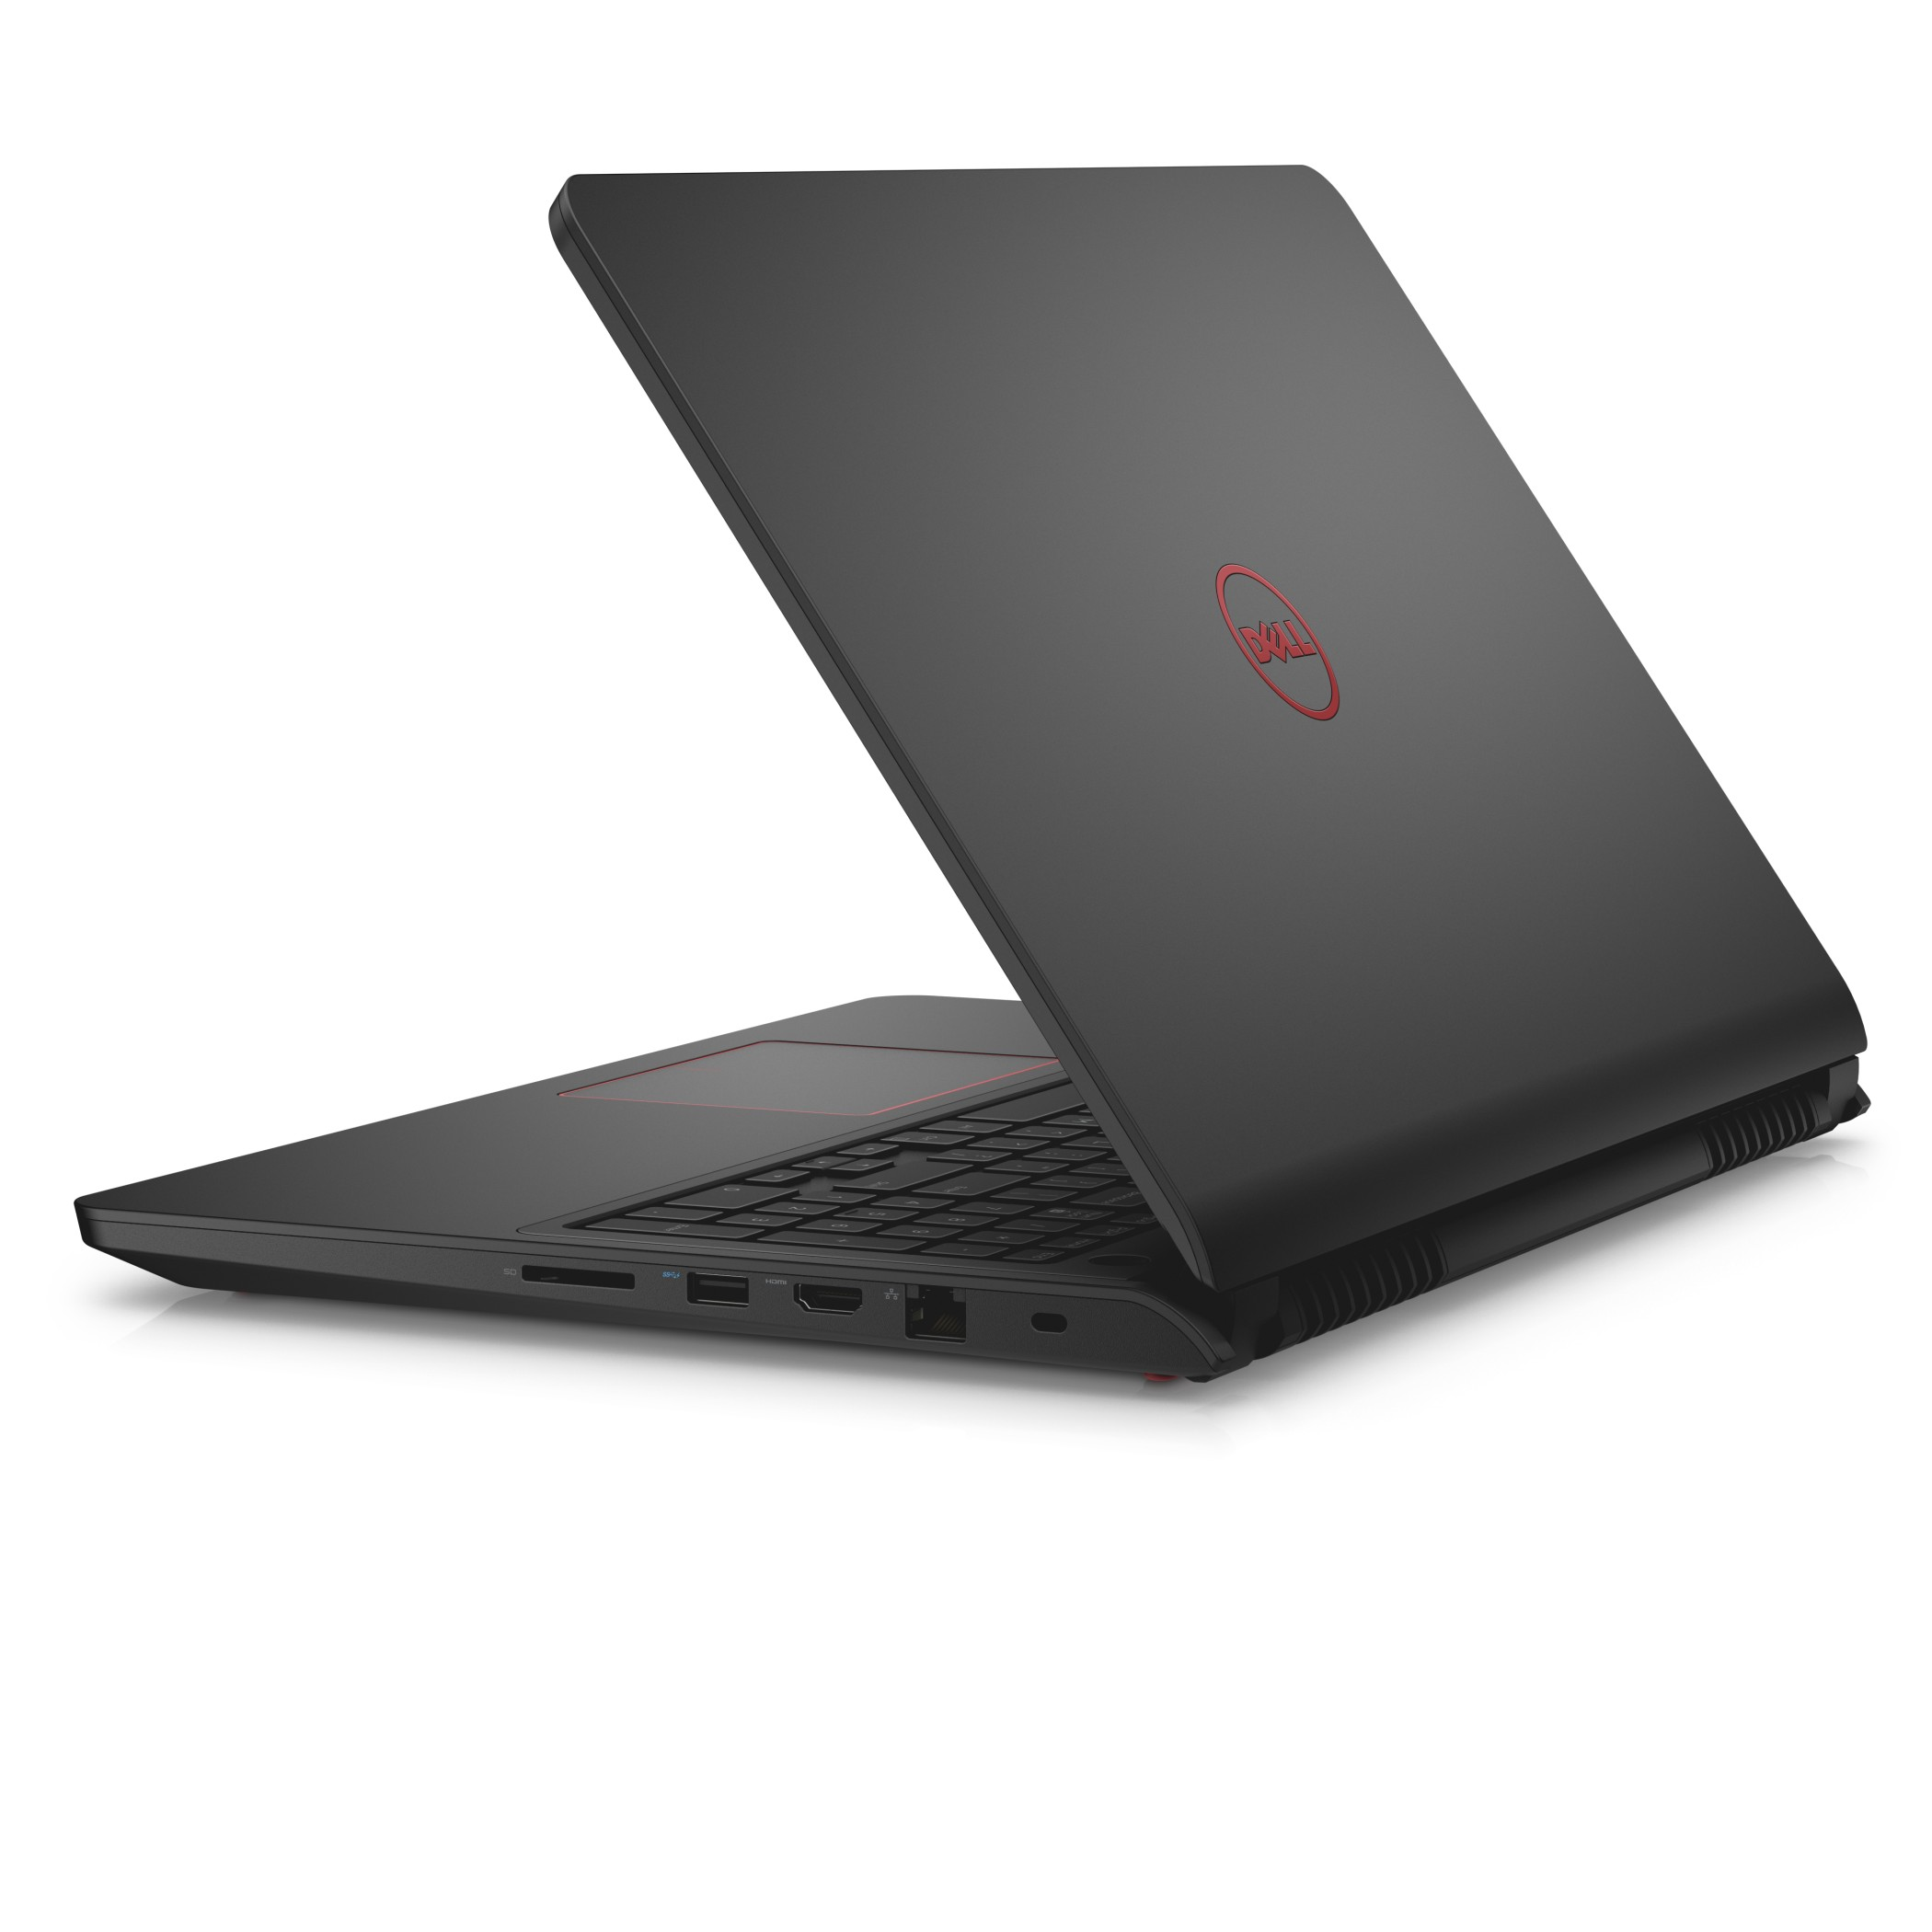 "DELL Inspiron 7559/i7-6700HQ/8GB/1TB+8GB flash/4GB Nvidia 960M/15,6""/UHD Touch/Win 10 MUI"